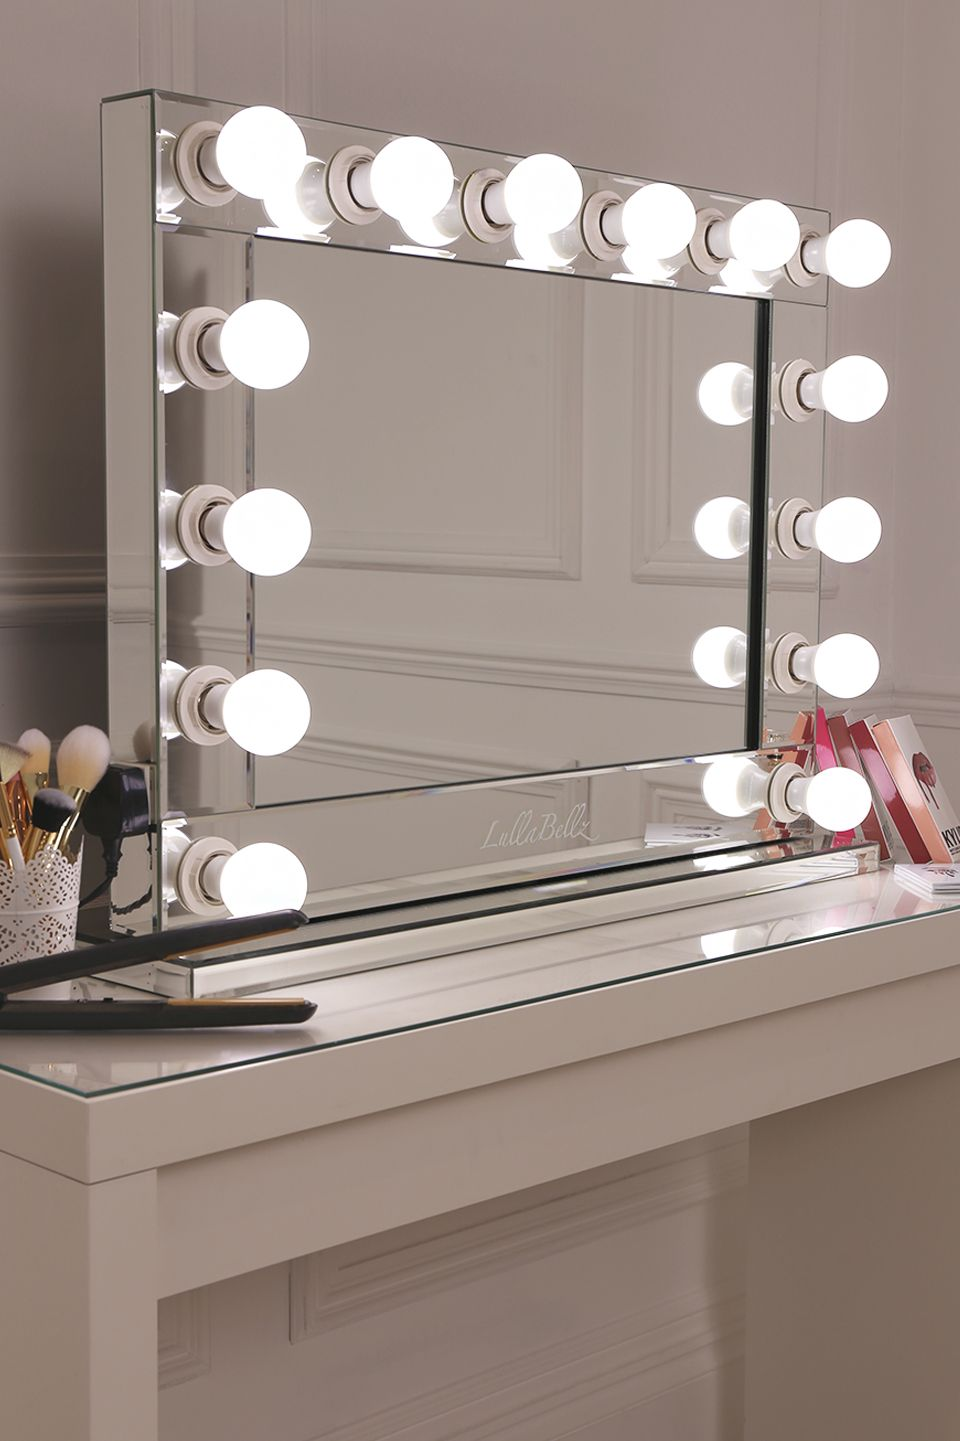 premium mirrored base hollywood mirror with slick mirrored edging and 14 frosted bulbs. Black Bedroom Furniture Sets. Home Design Ideas